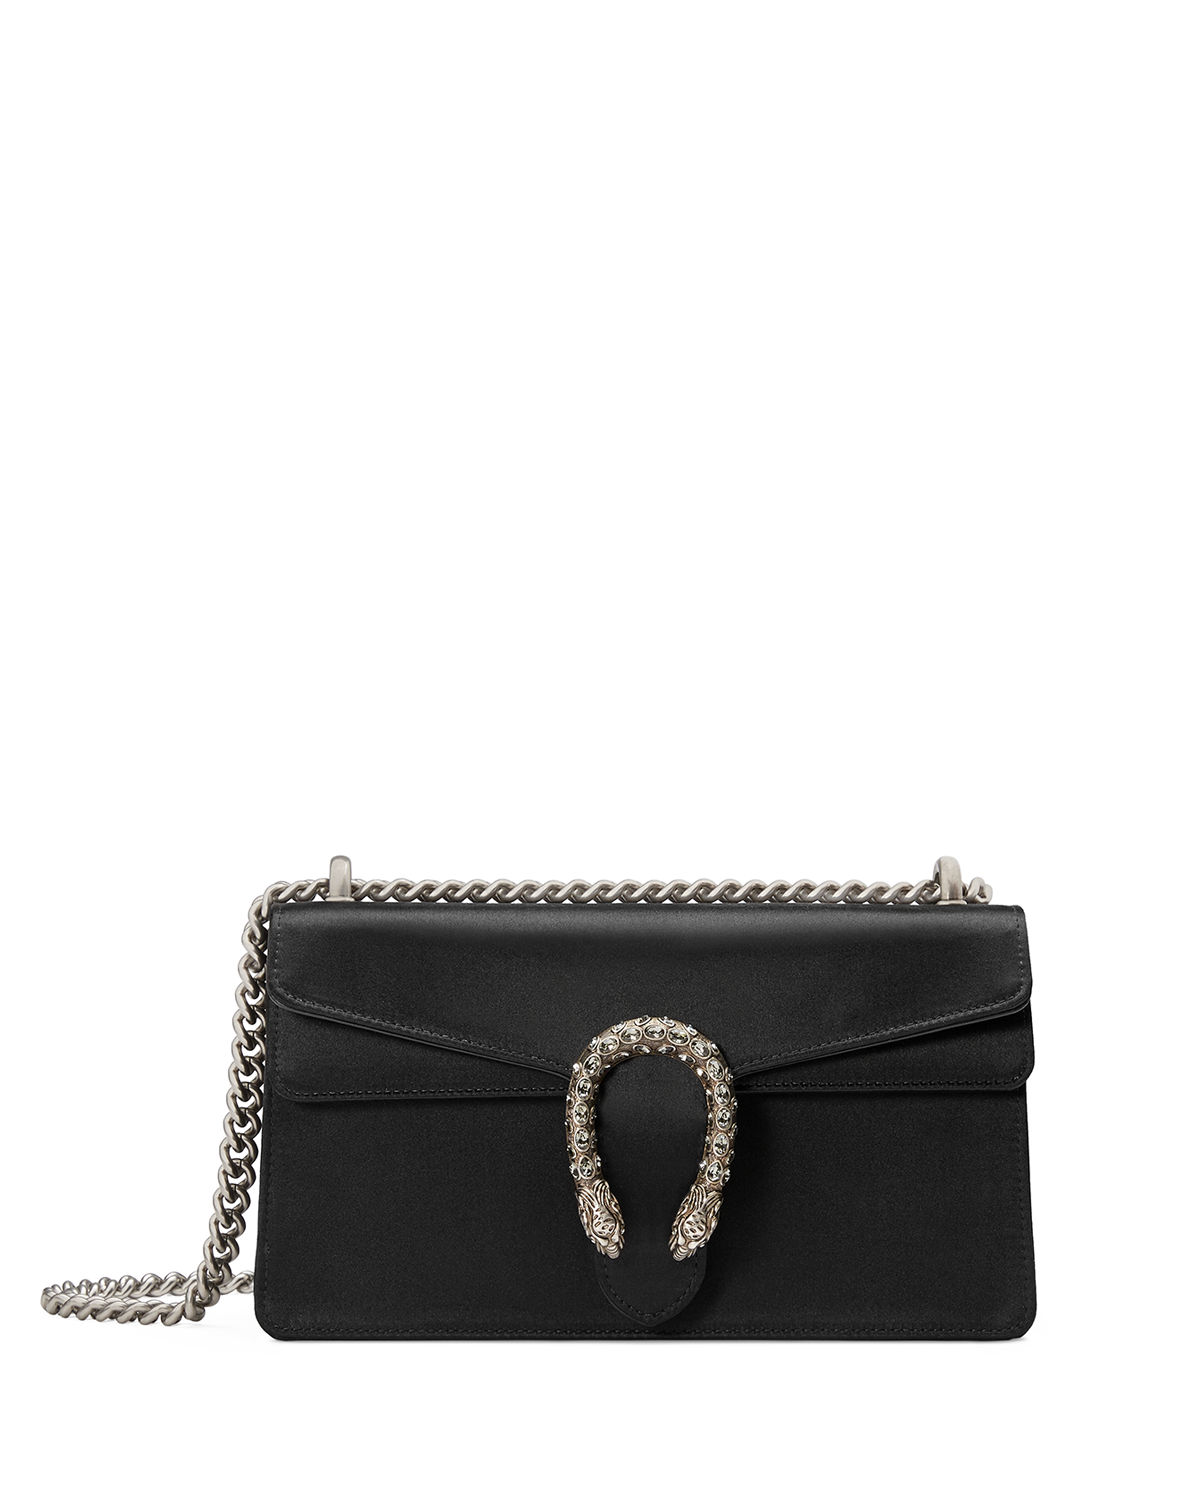 c9dfcb363747 Gucci Dionysus Small Satin Shoulder Bag | Neiman Marcus